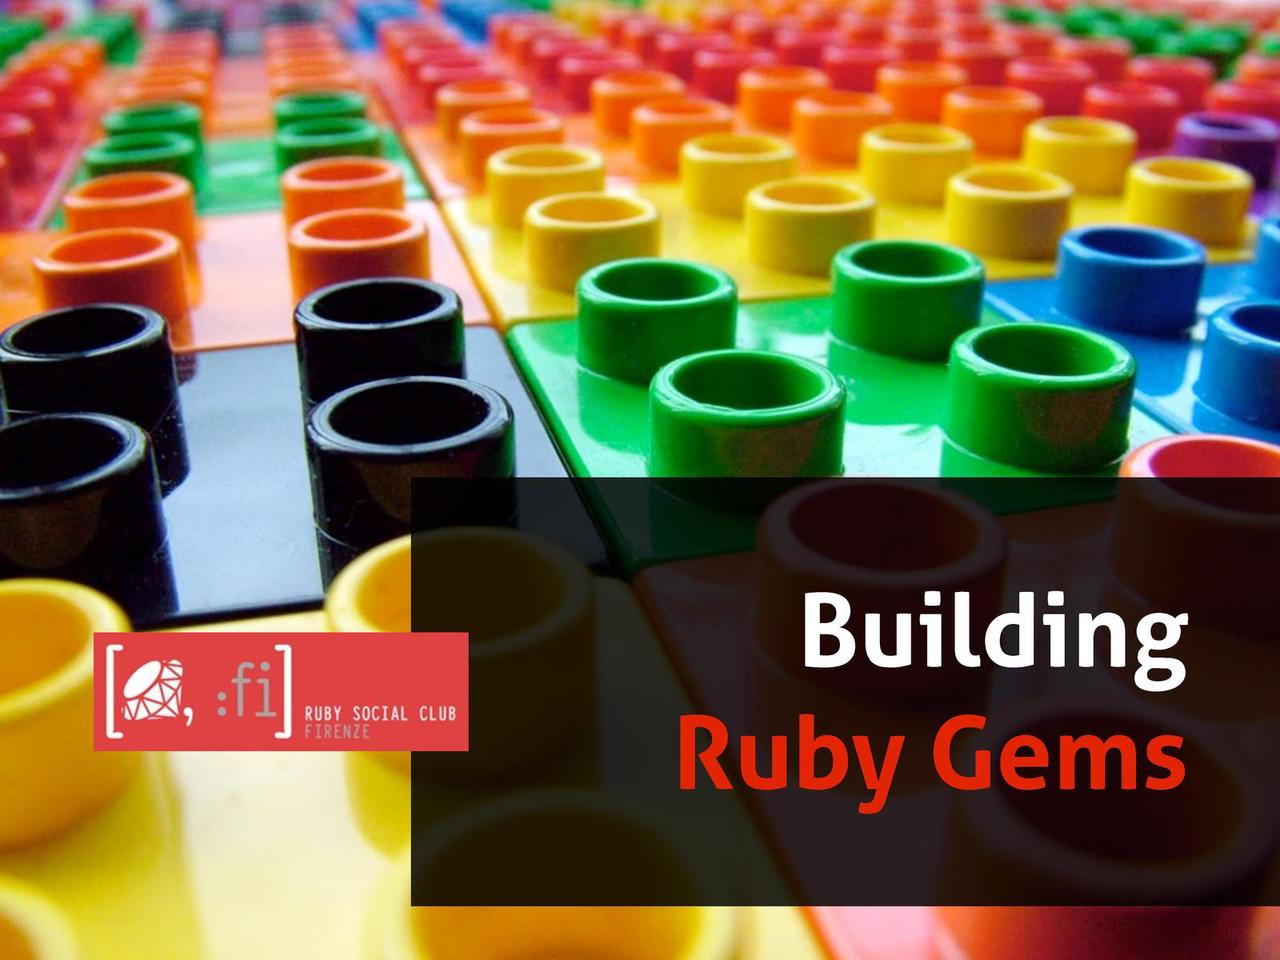 Building Ruby gems